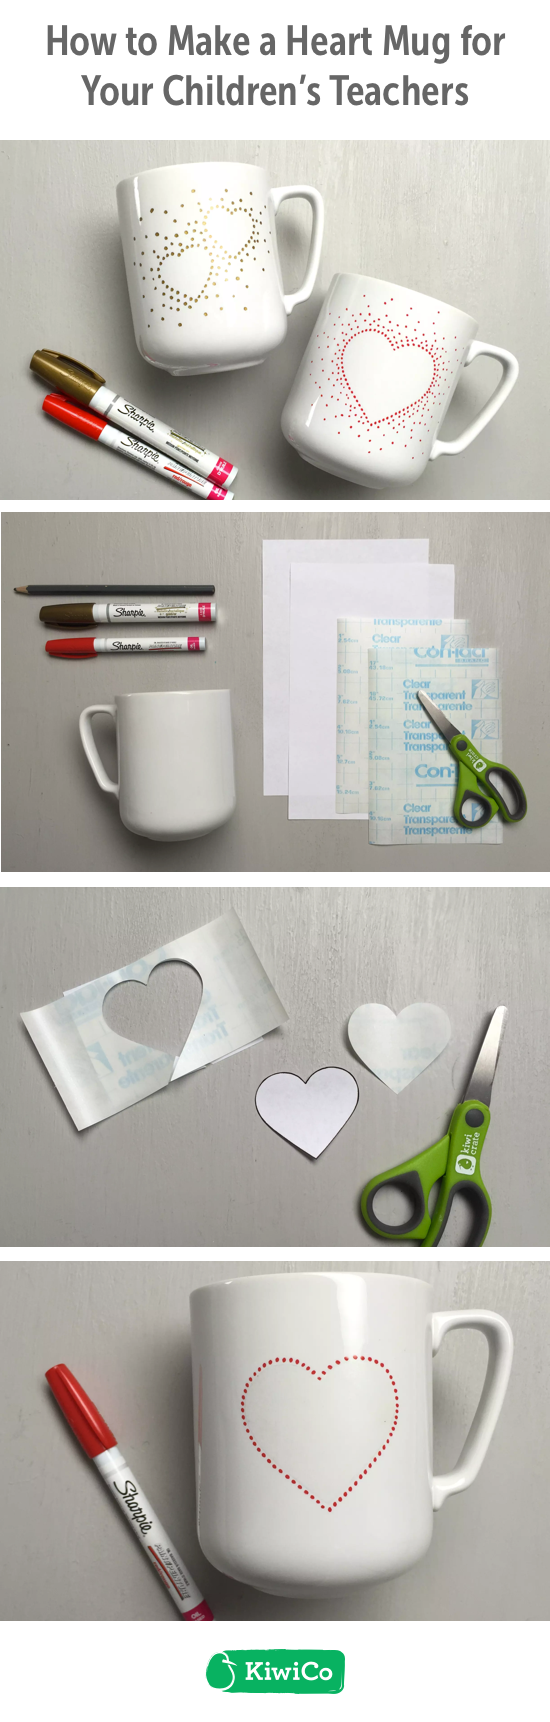 Heart mug diy this do it yourself craft is great for valentines heart mug diy crafts solutioingenieria Choice Image